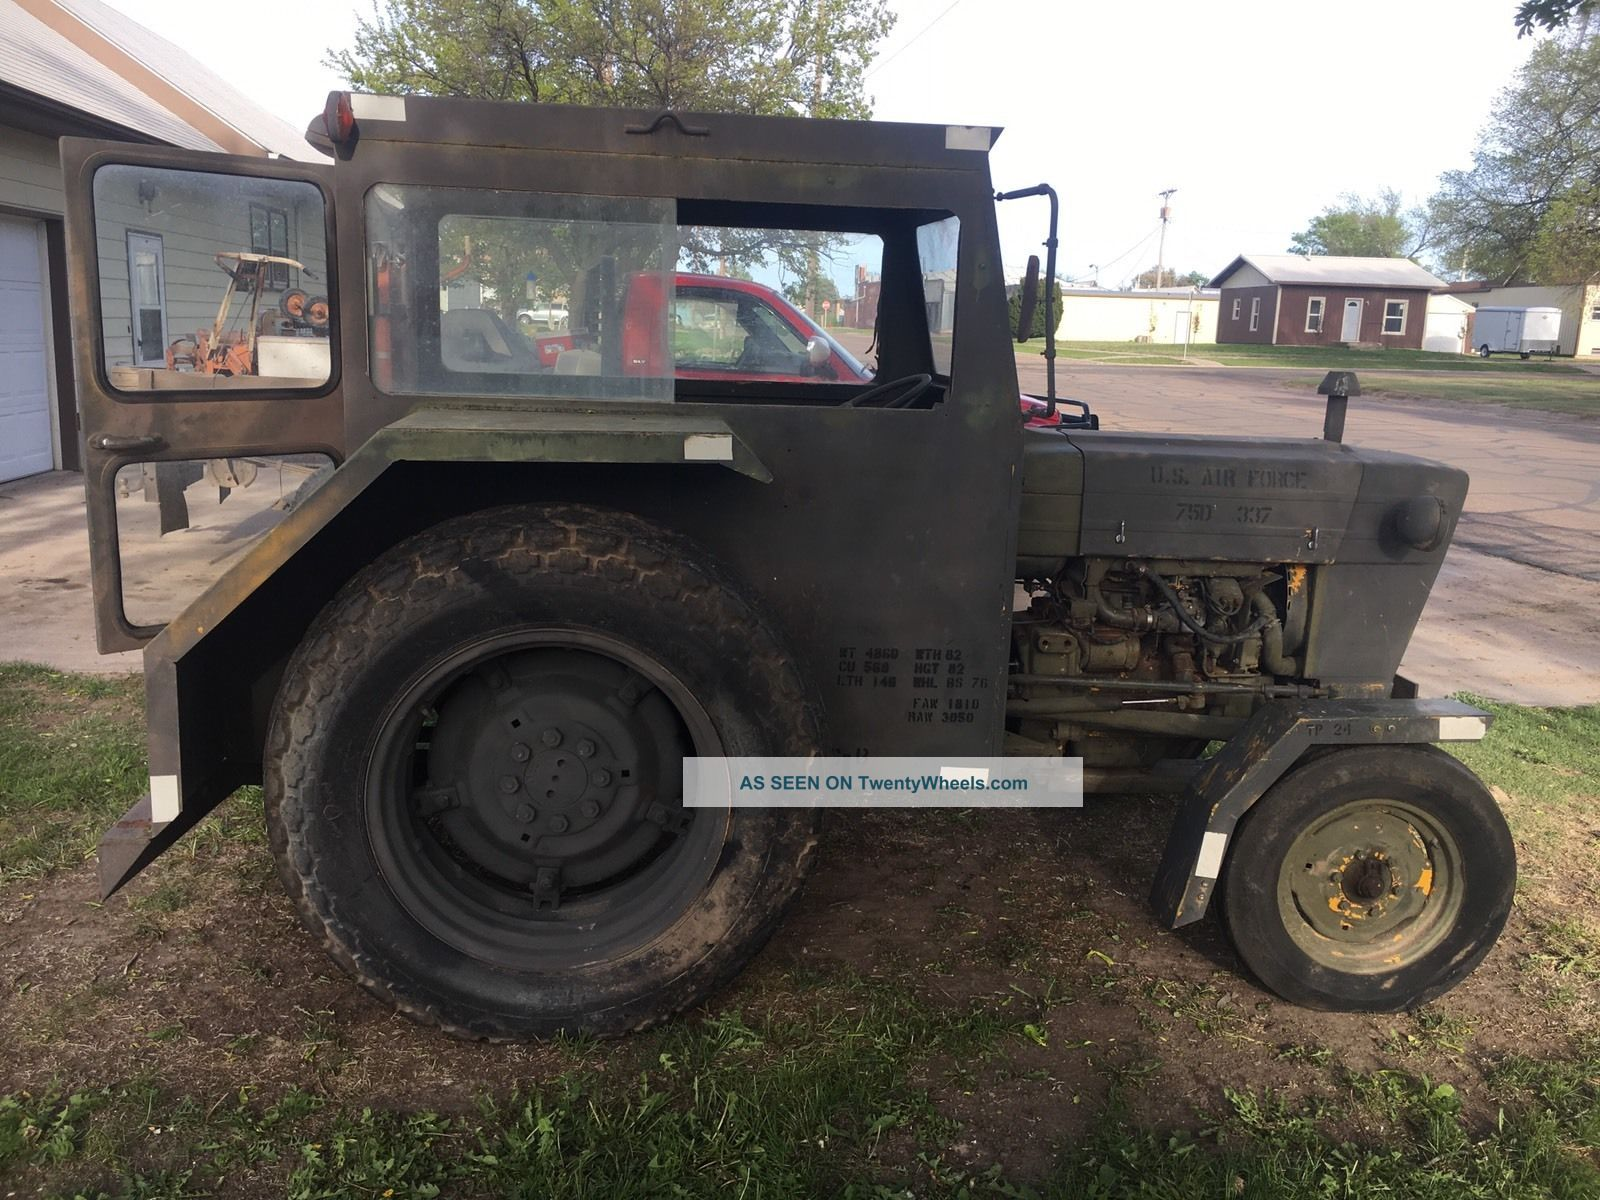 Ford Tractor Airplane : Ford tractor air force tug